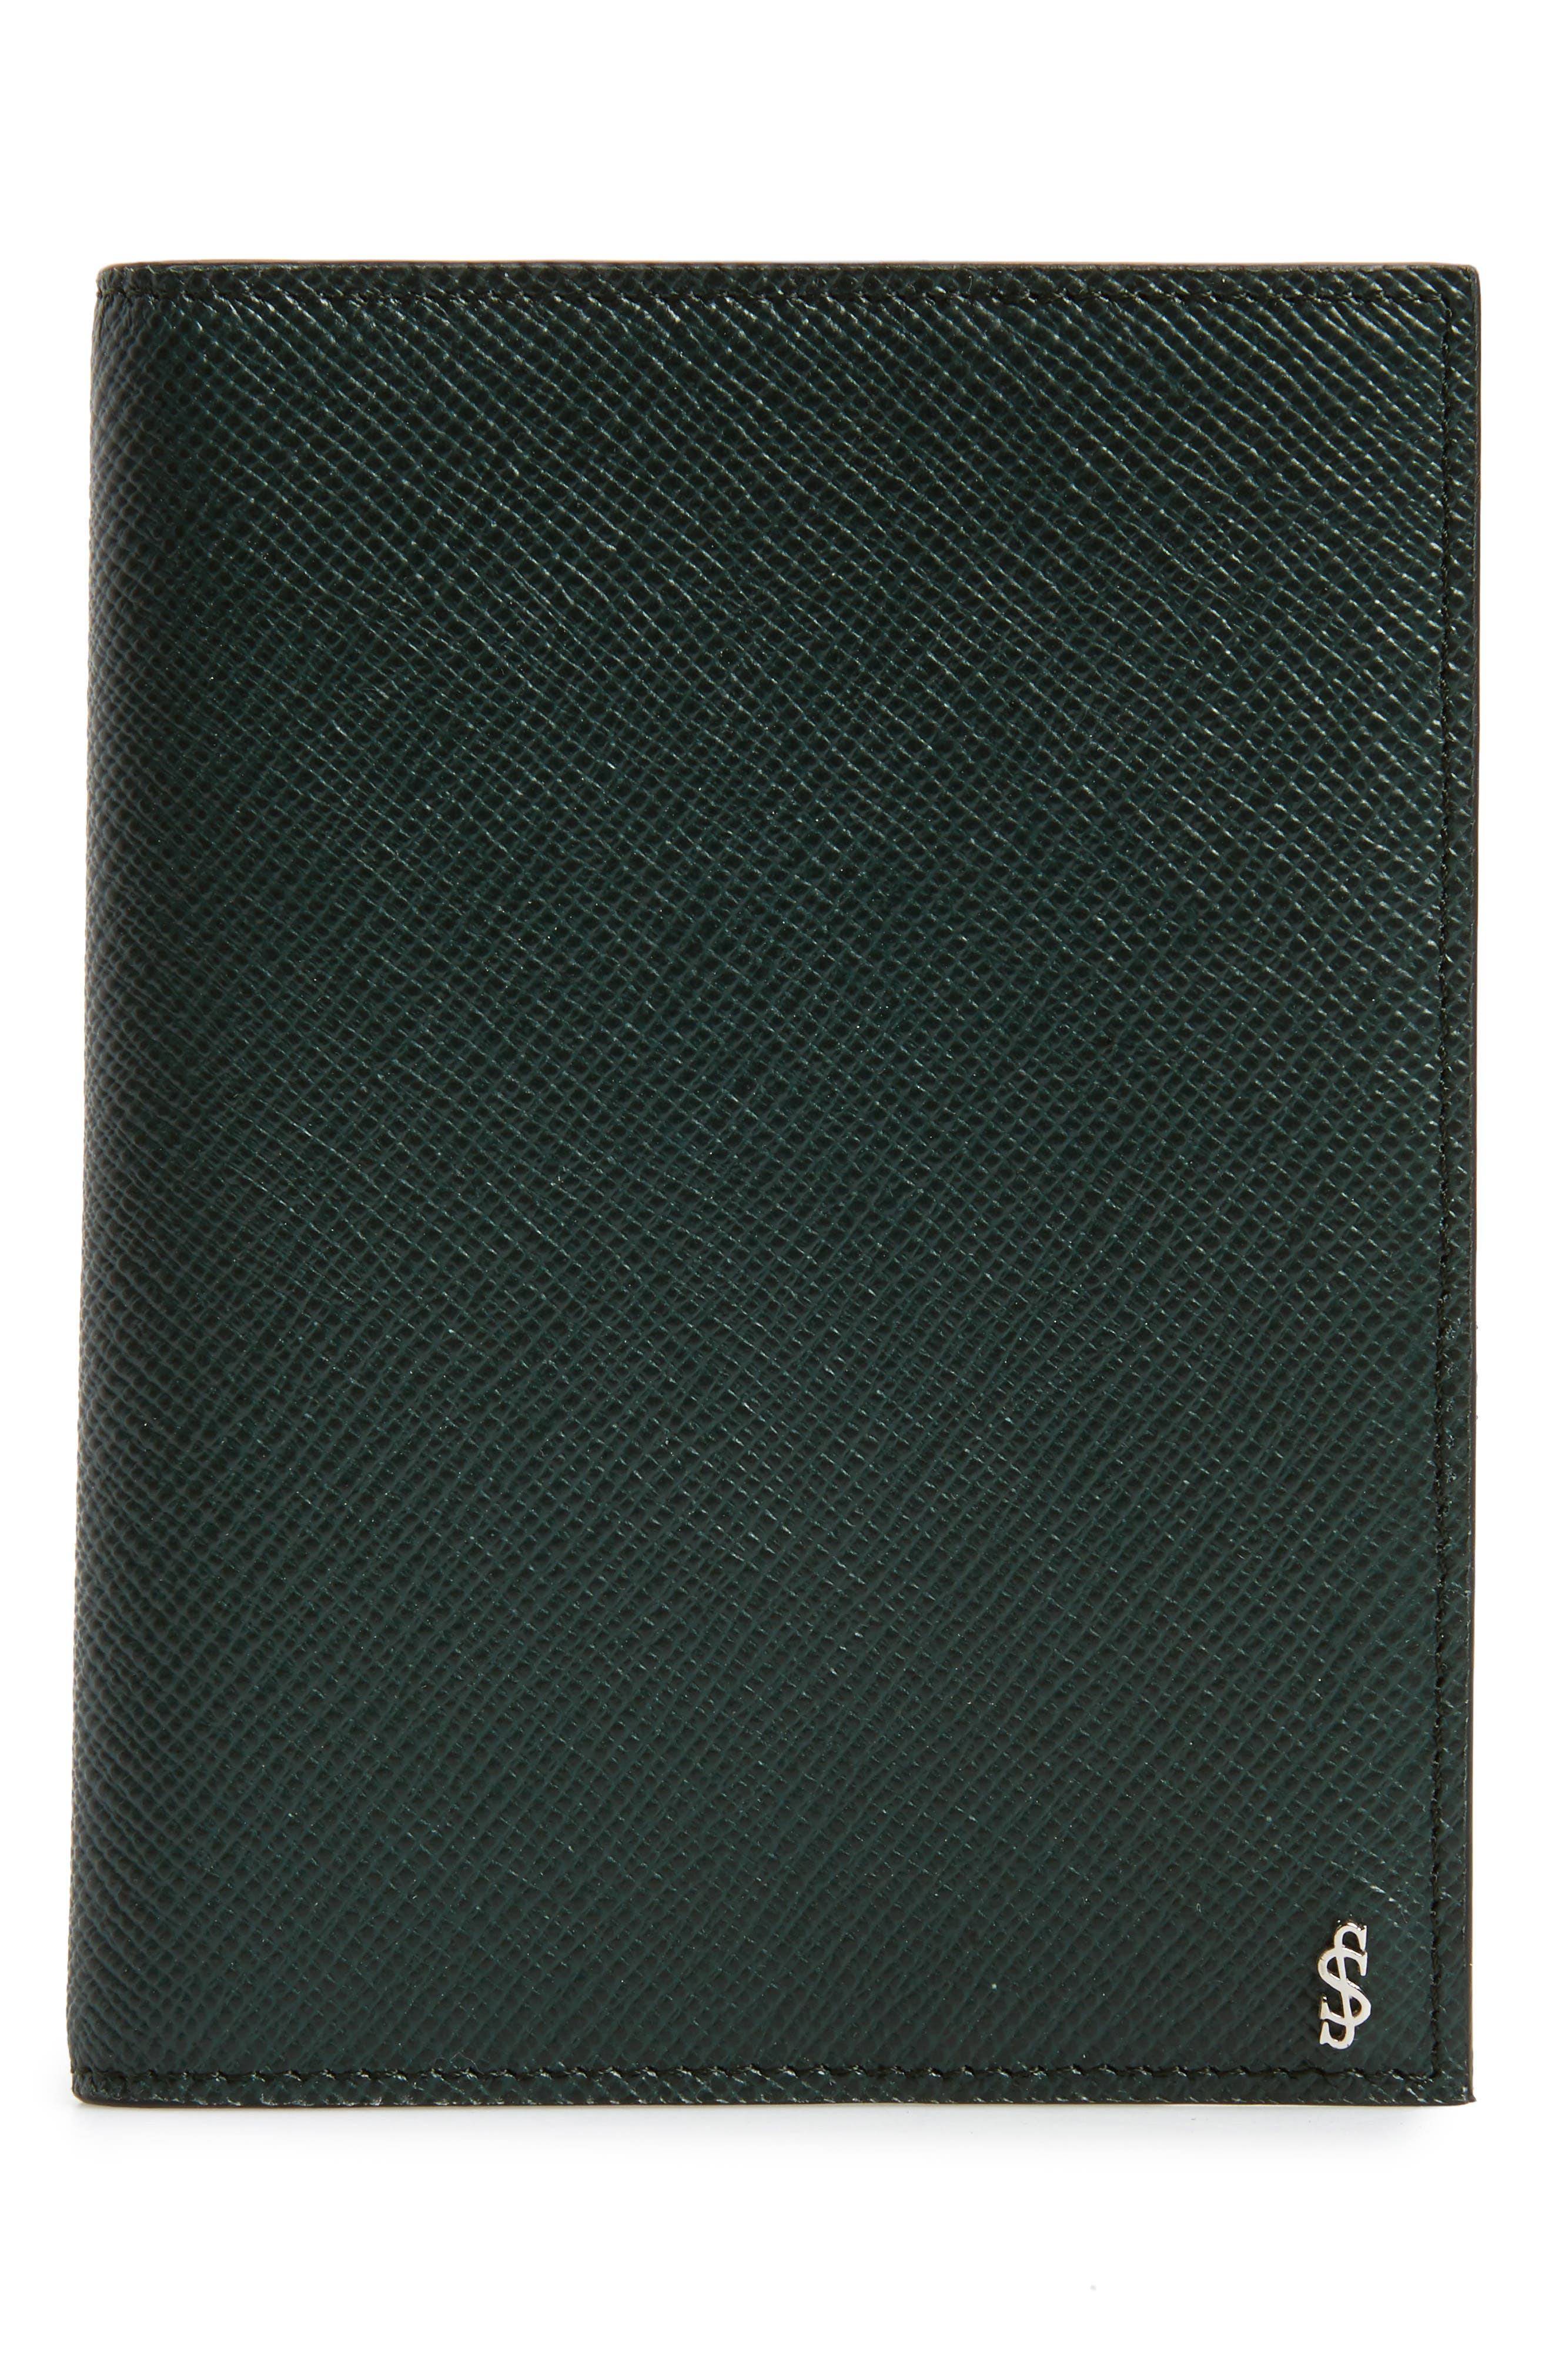 Evolution Leather Passport Case,                             Main thumbnail 1, color,                             Forest Green